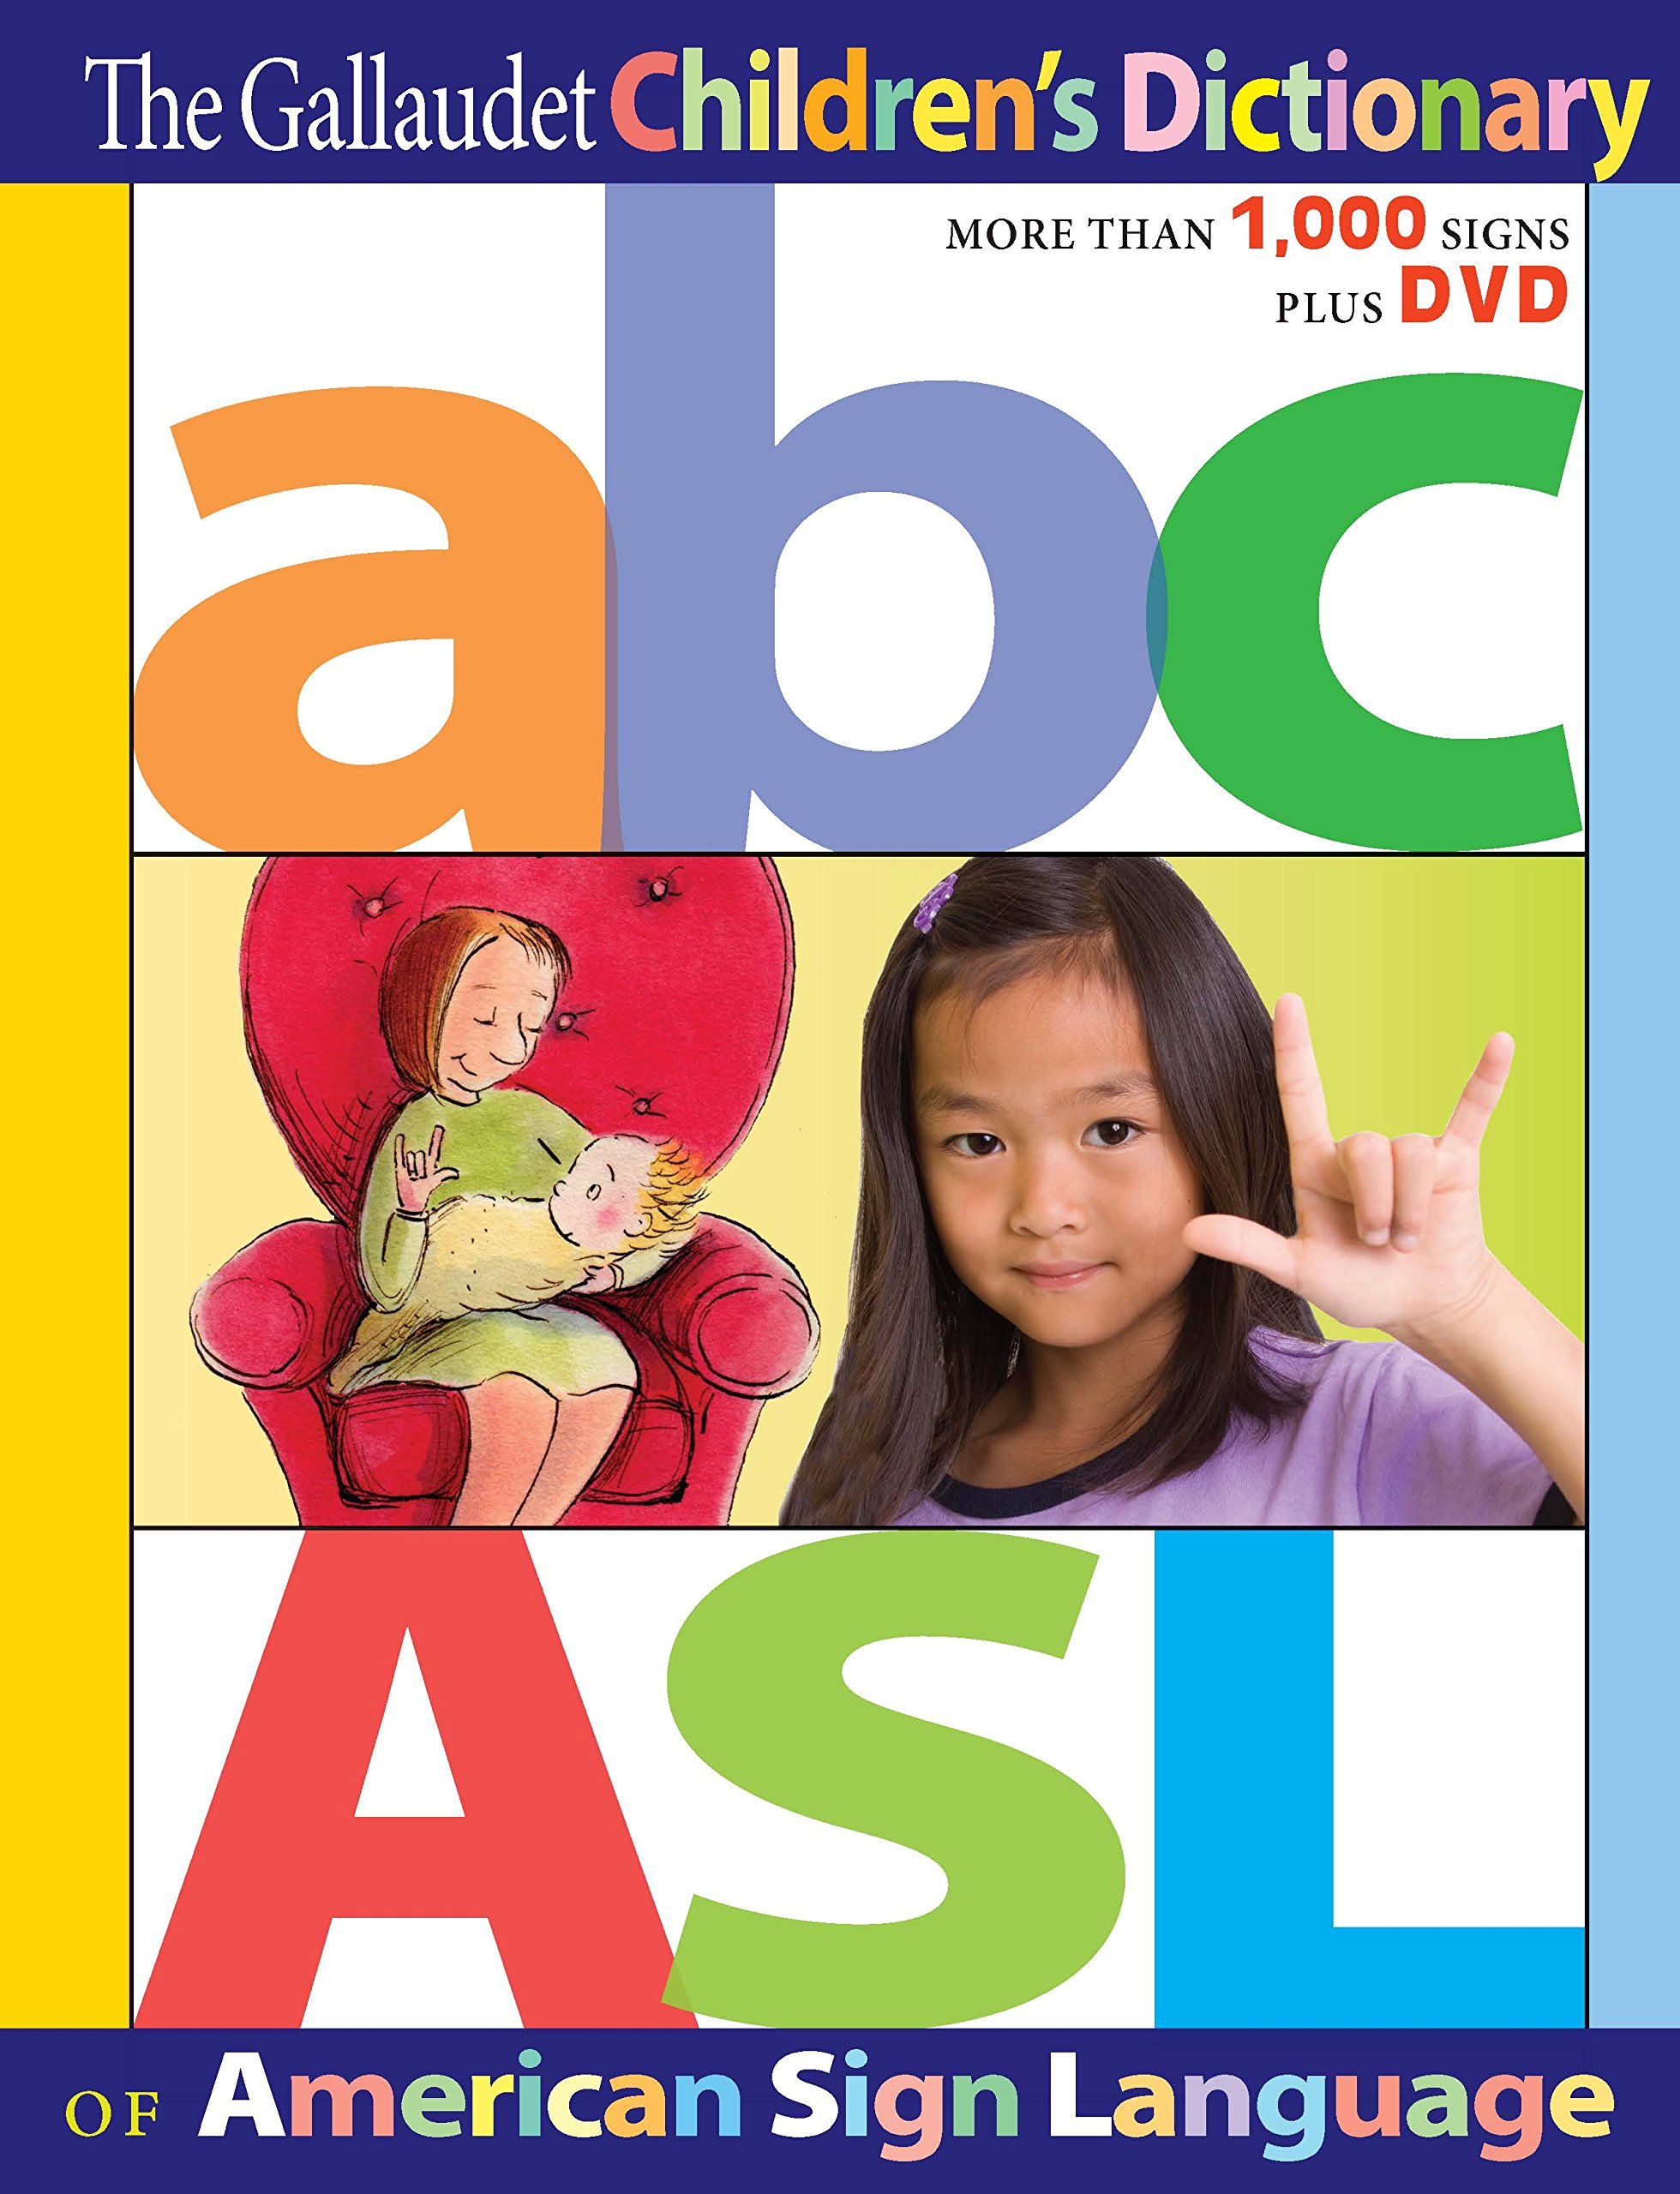 The Gallaudet Children's Dictionary of American Sign Language by Gallaudet University Press